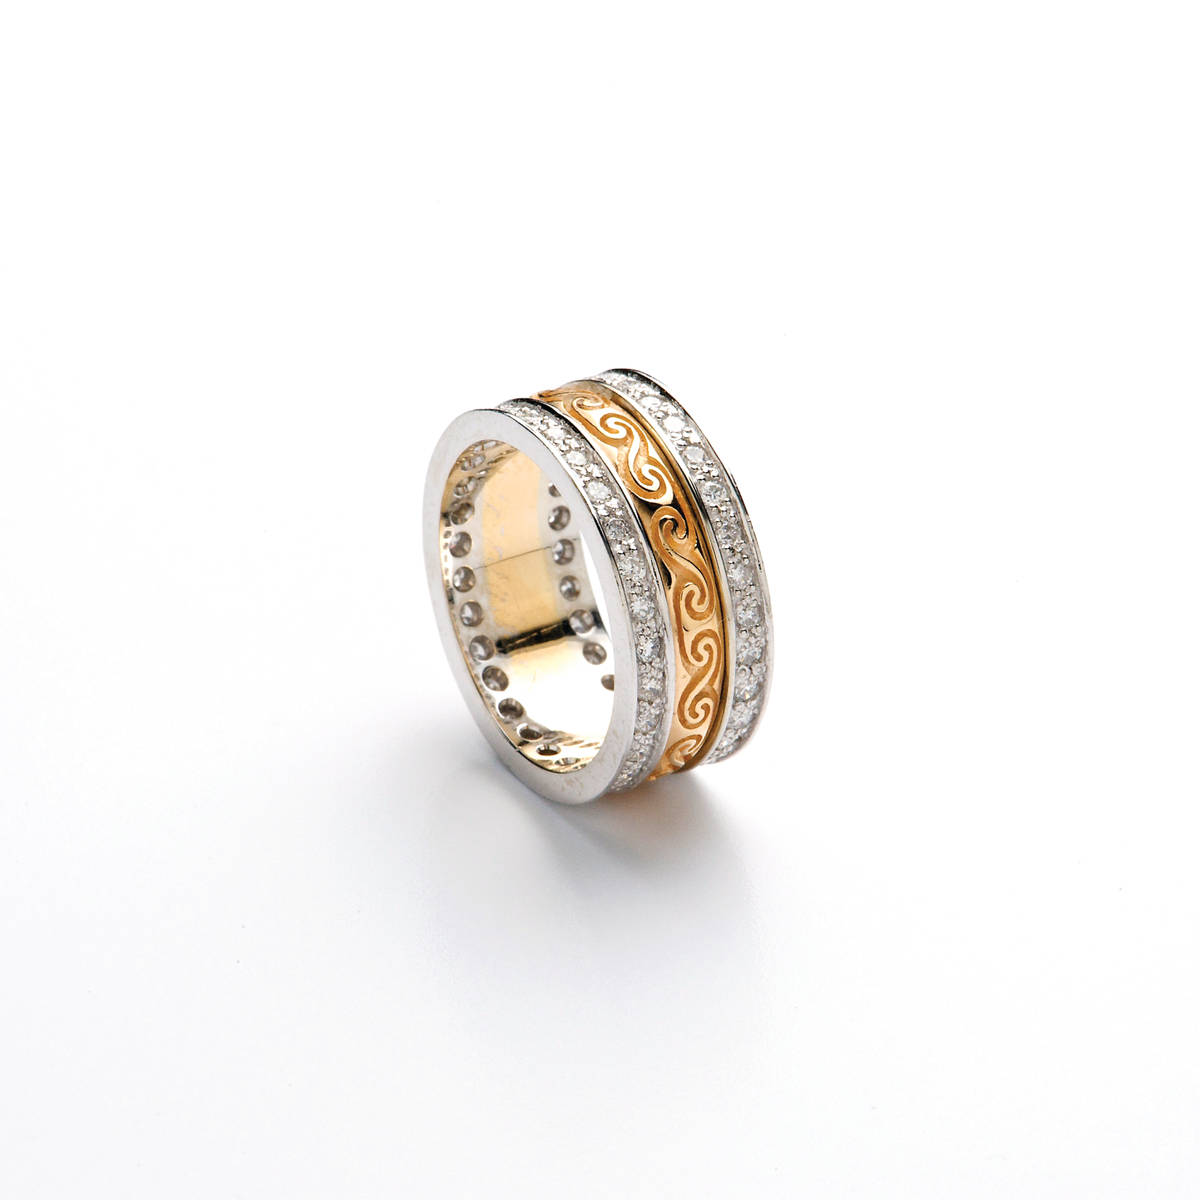 18 carat yellow gold lady's knot etched diamond set ring.7.9mm wideExquisite to behold,to be sure.